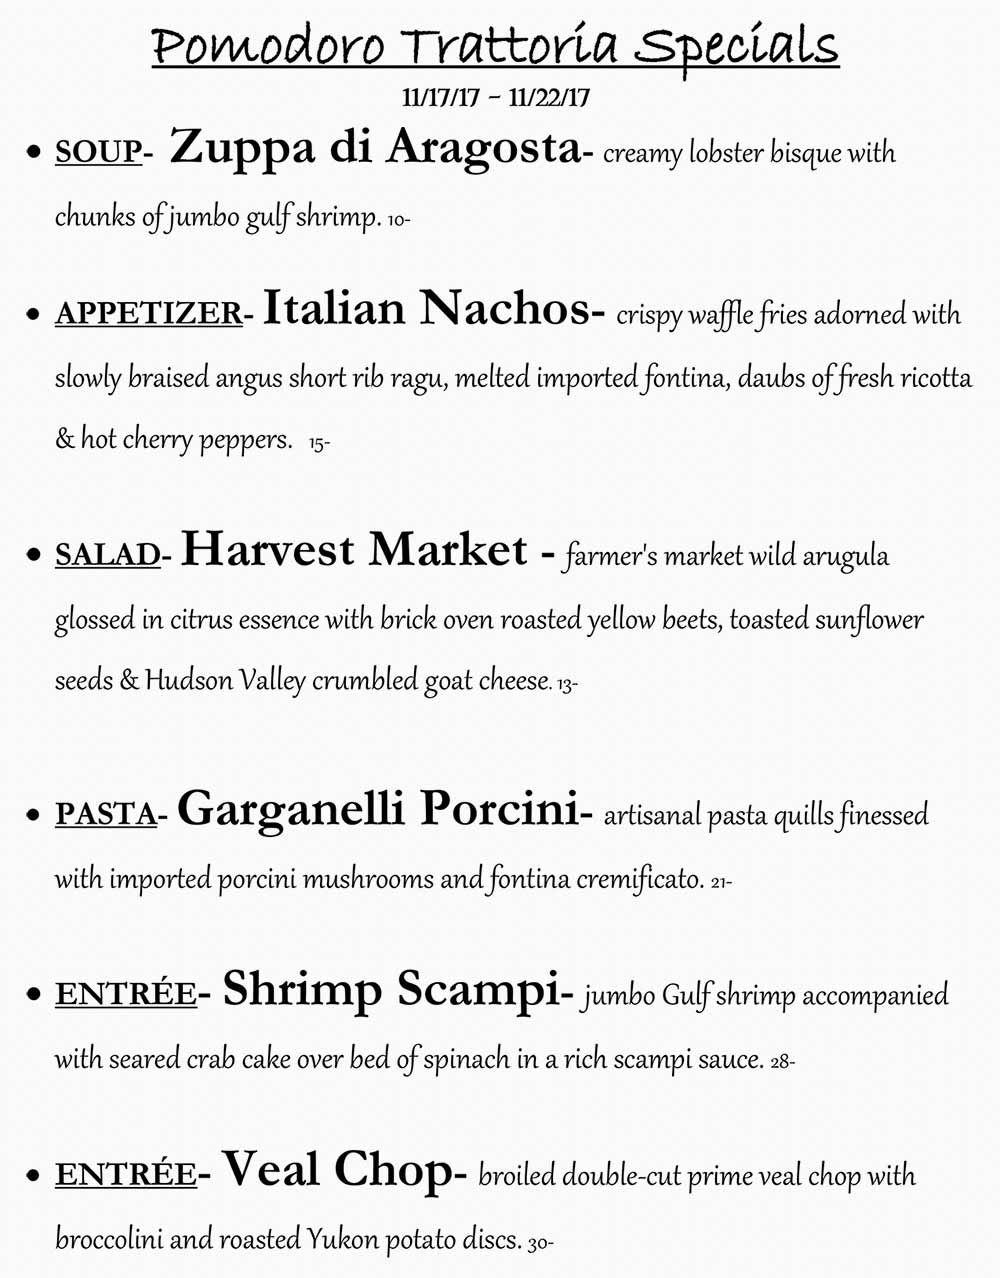 Pomodoro Riverside Weekly Specials from 11/17 - 11/23